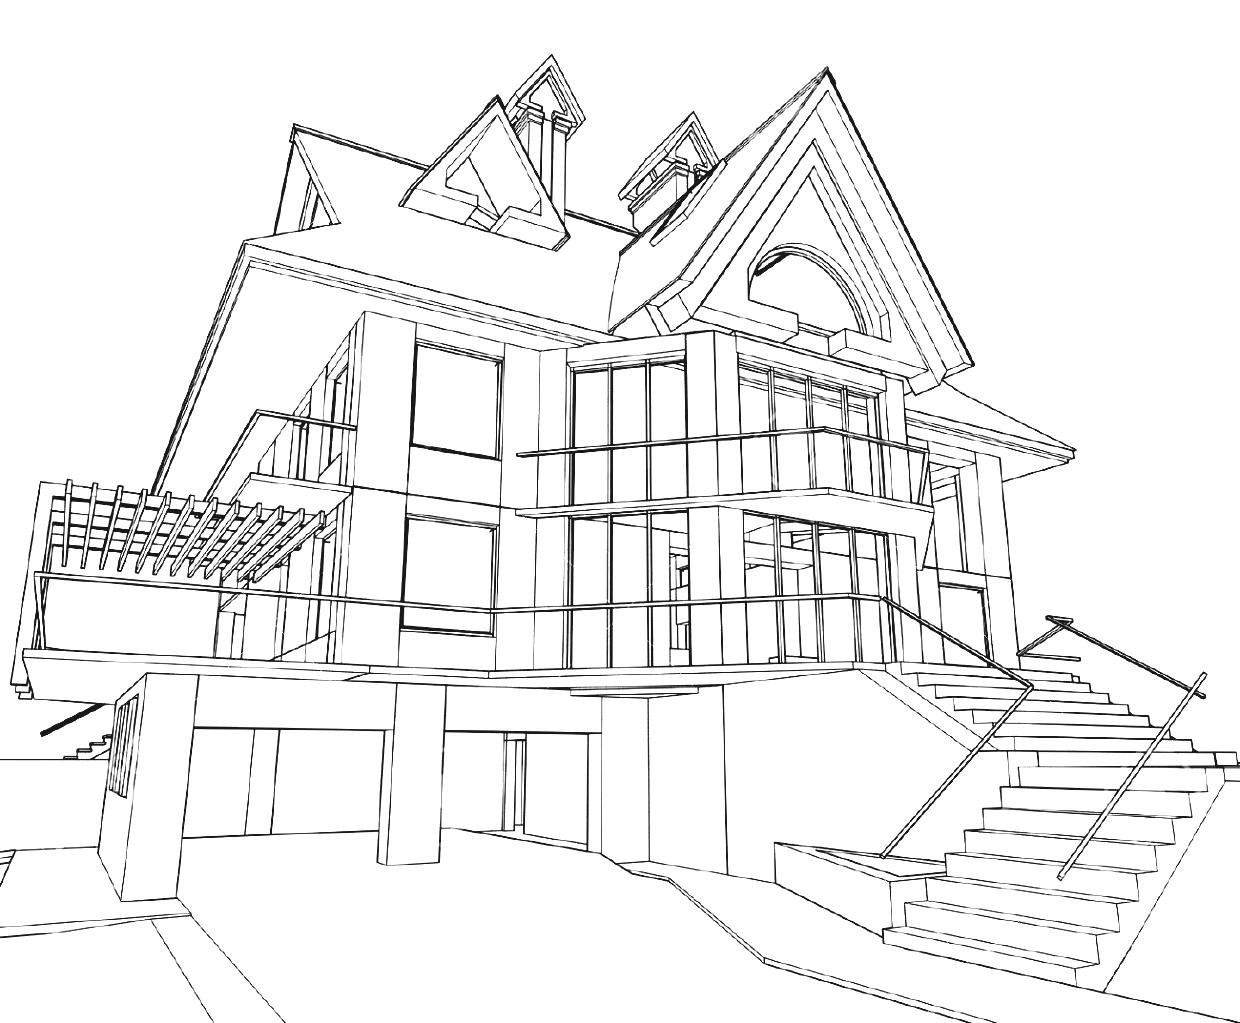 Architecture house drawing at free for for House sketches from photos